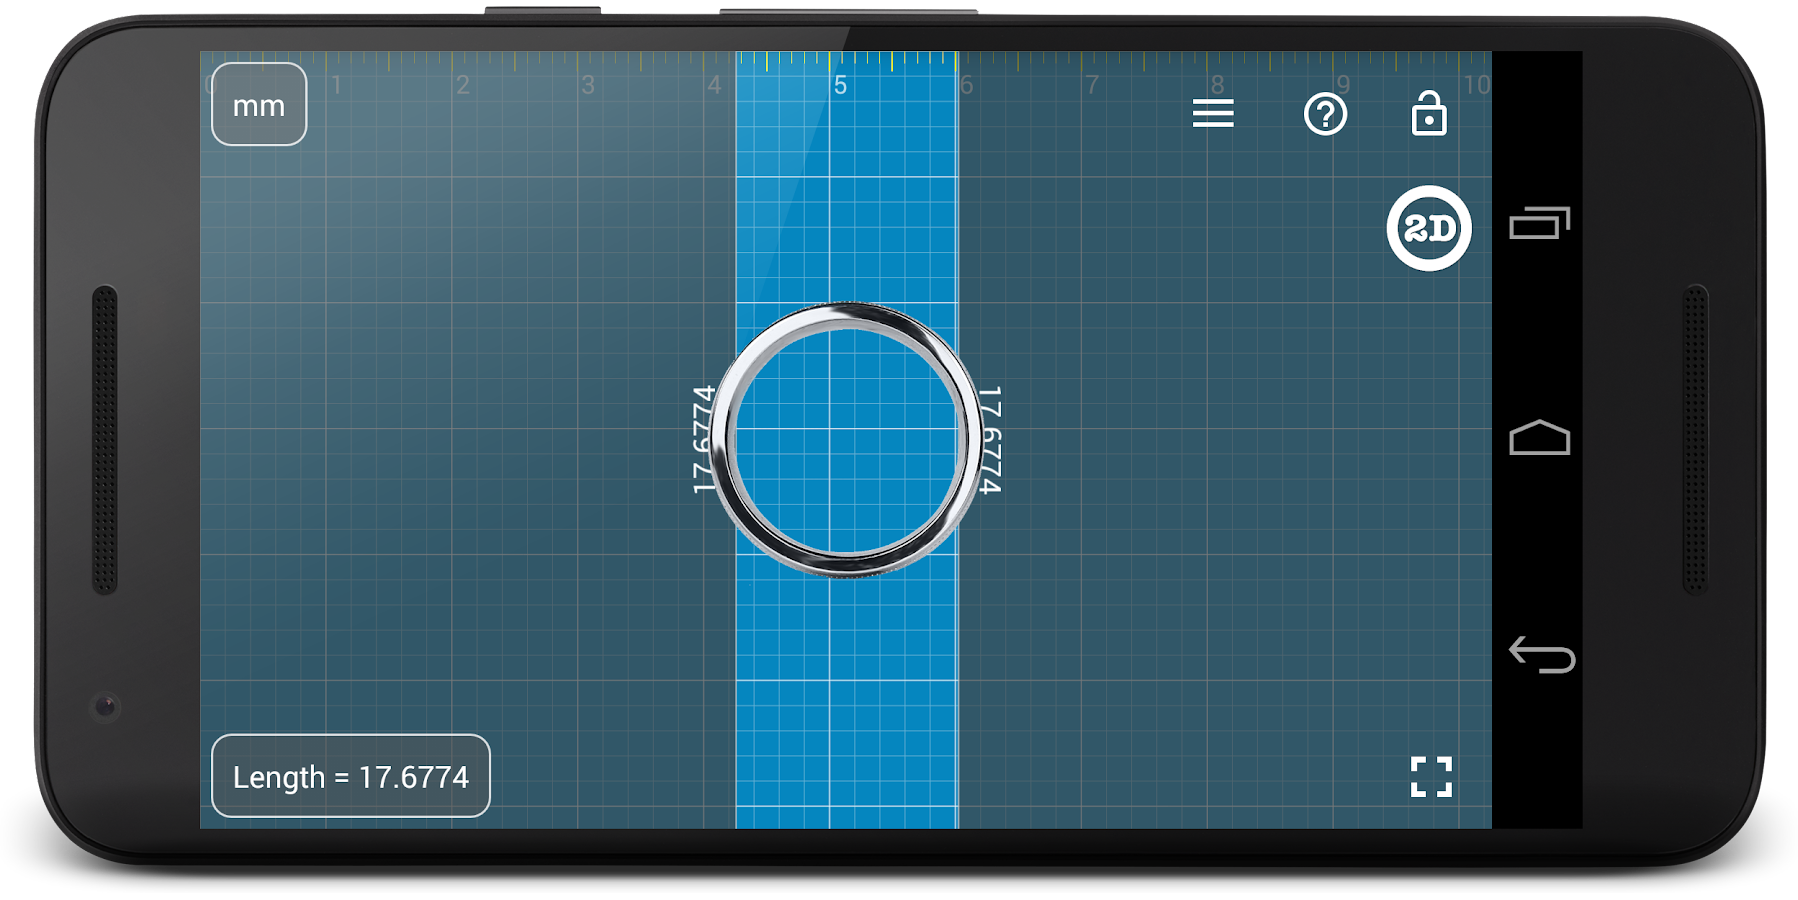 Millimeter - screen ruler app- screenshot